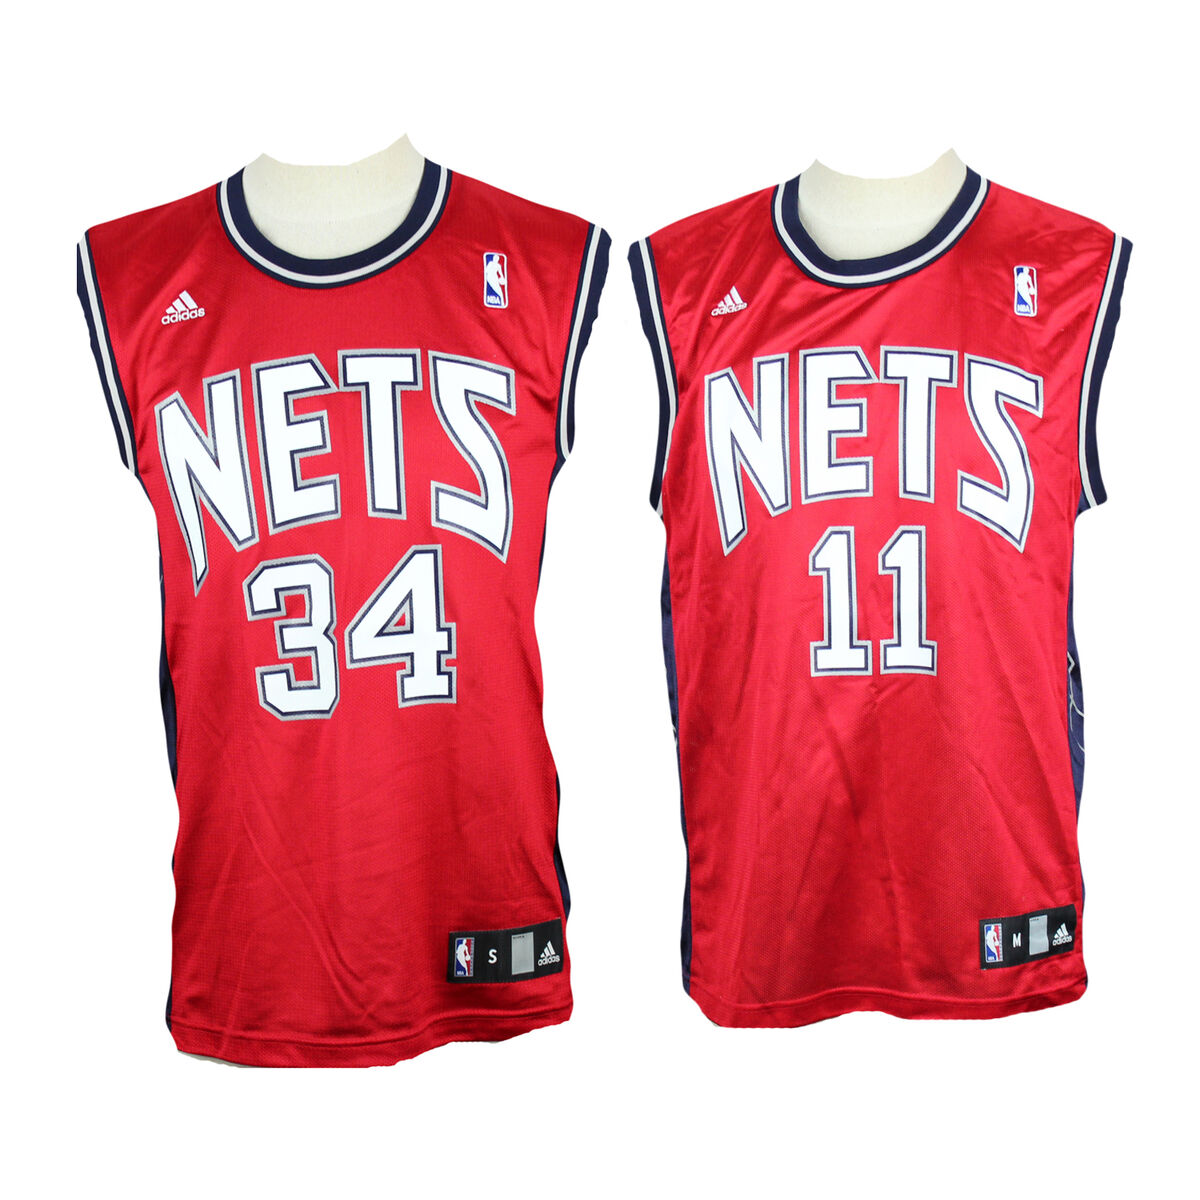 NBA New Jersey Nets Adidas Replica Basketball Jerseys Harris 34 Lopez f10e58809